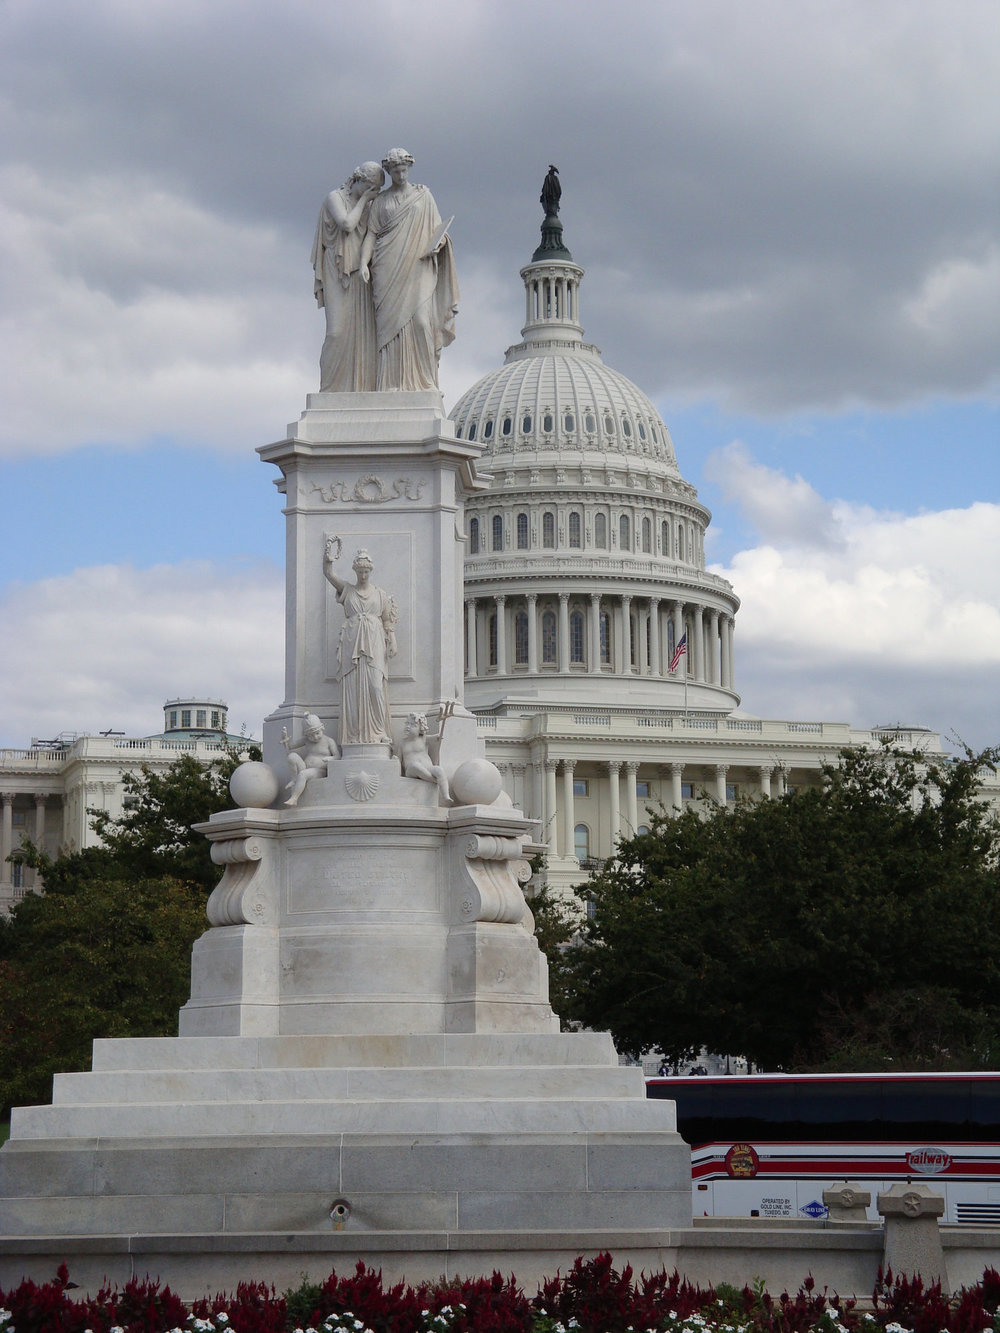 Statue of Grief (also known as America) weeping on the shoulder of History with the US Capitol dome in the background.